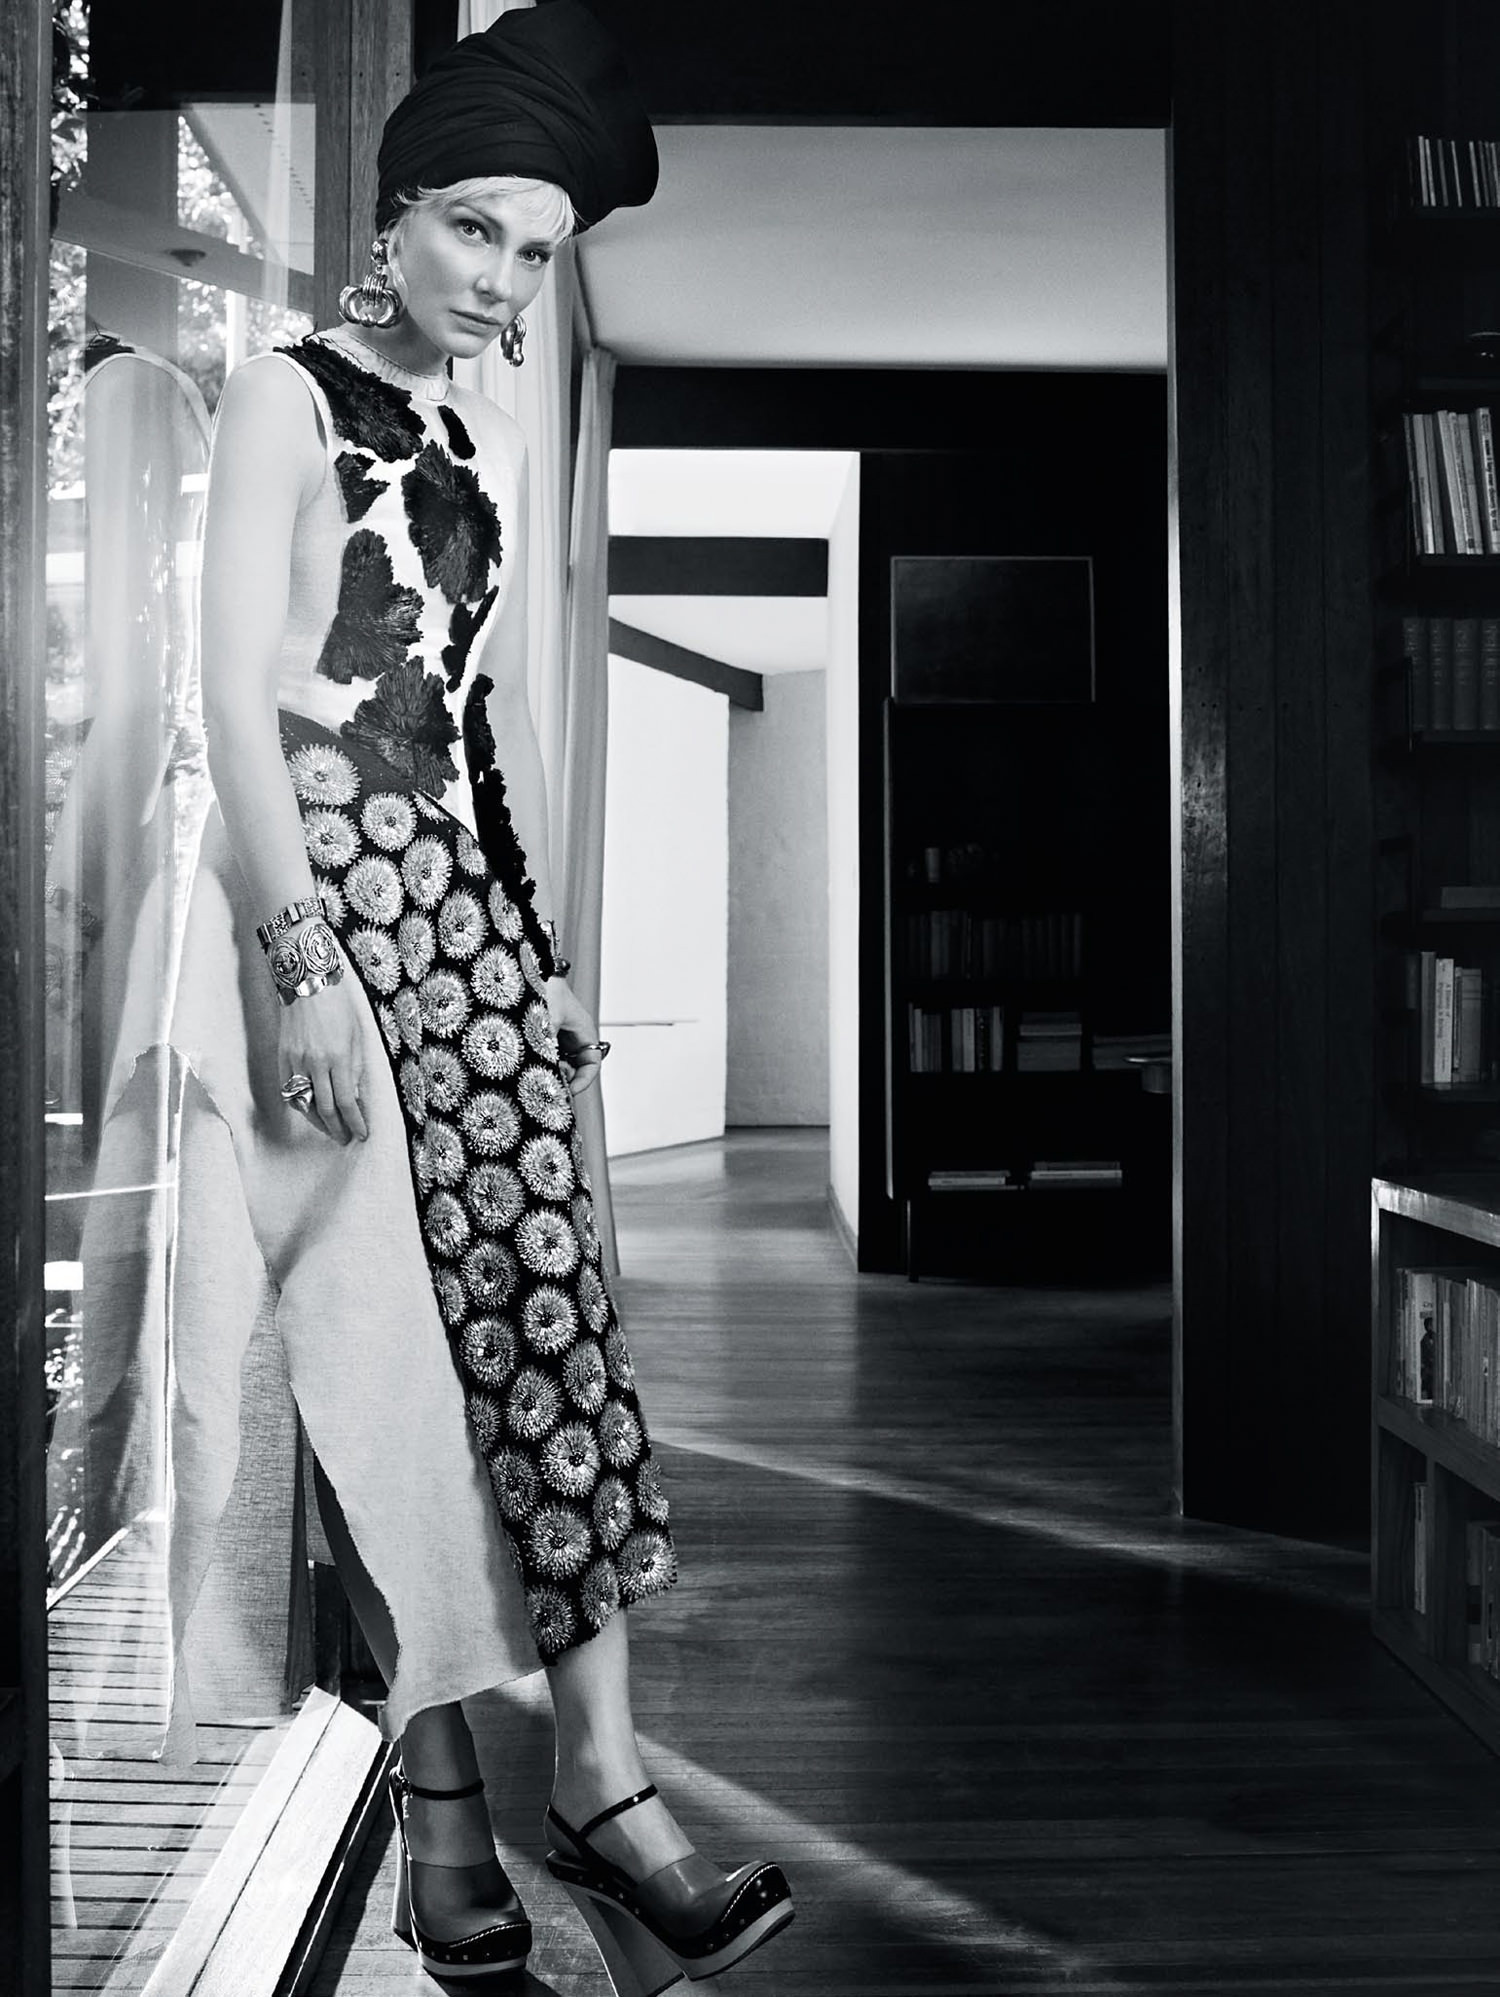 Cate Blanchett for Vogue Australia April 2015. Photo by Emma Summerton | Yellowtrace